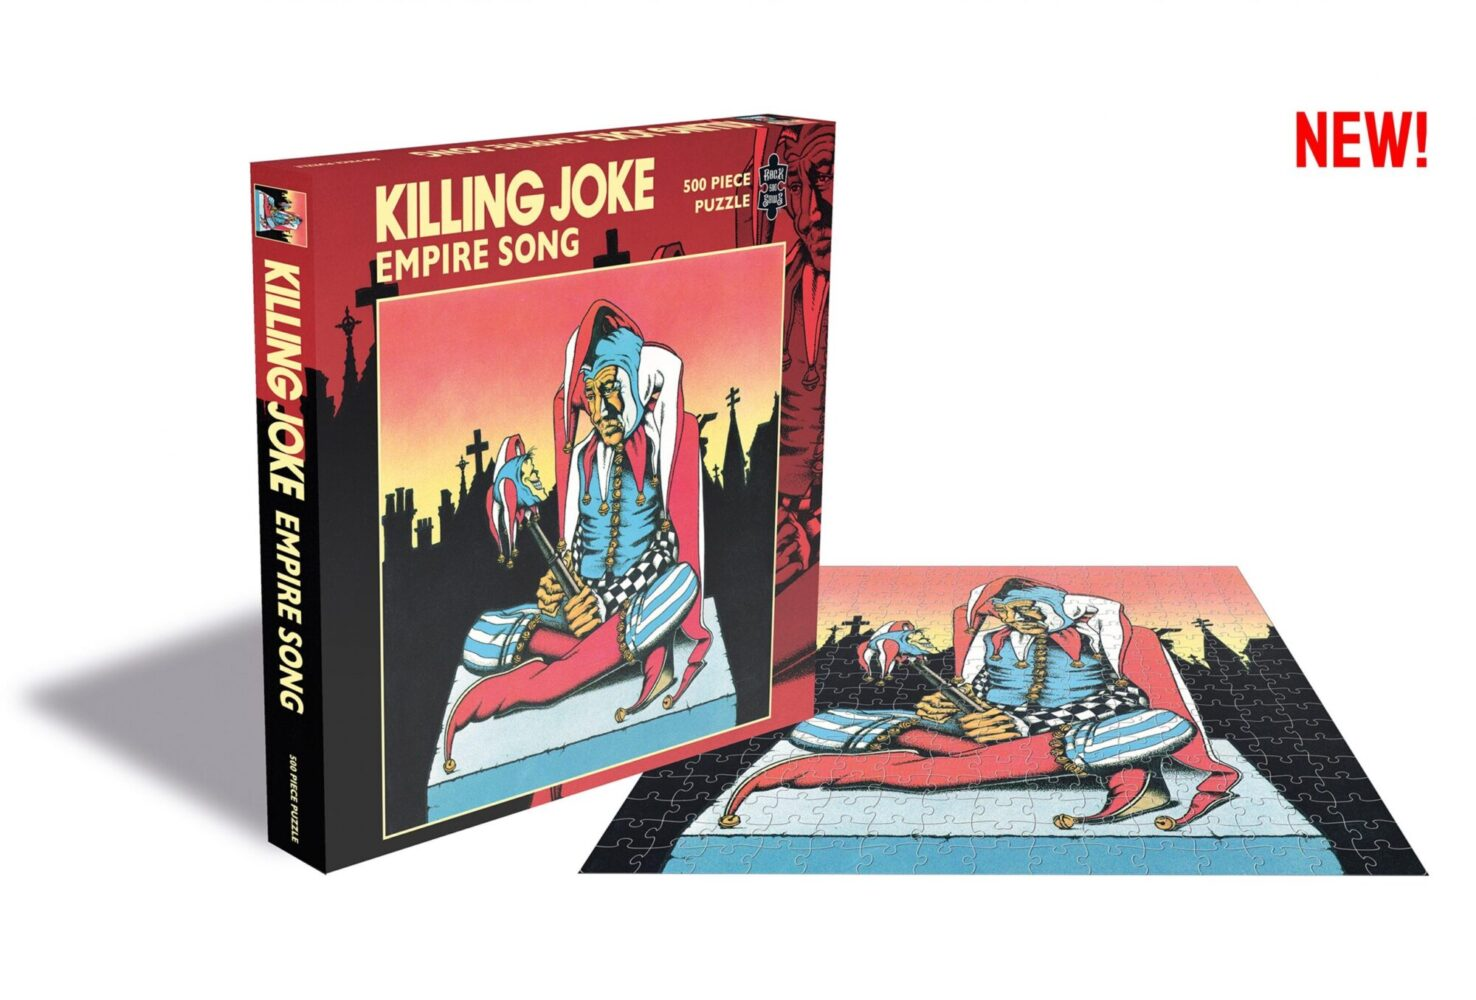 Killing Joke and Nick Cave jigsaws…you were a wild gig warrior once – now you can remember those days with these jigsaws!